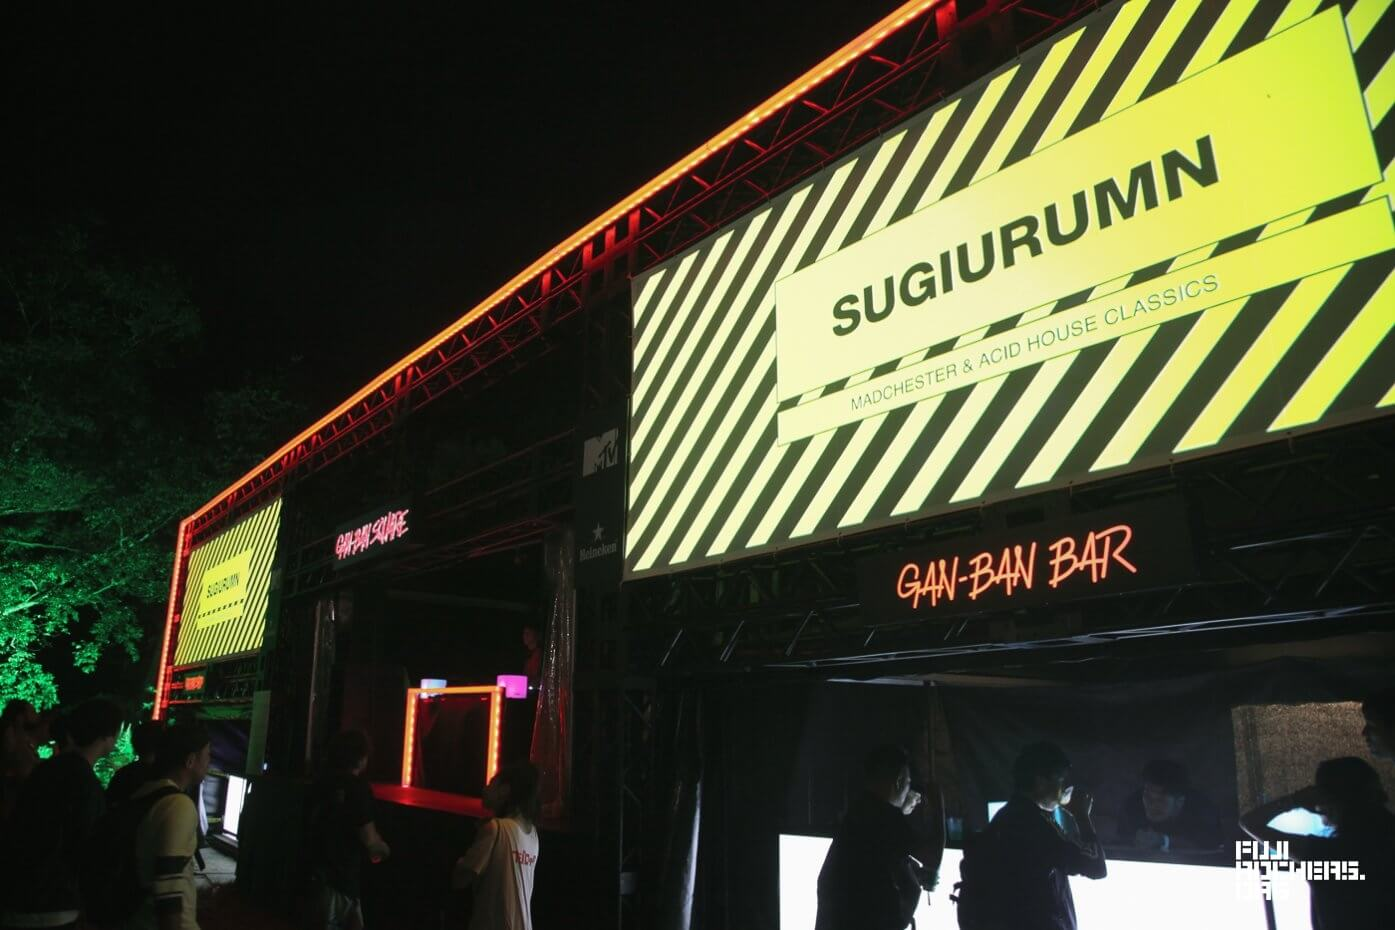 SUGIURUMN plays MADCHESTER & ACID HOUSE CLASSICS